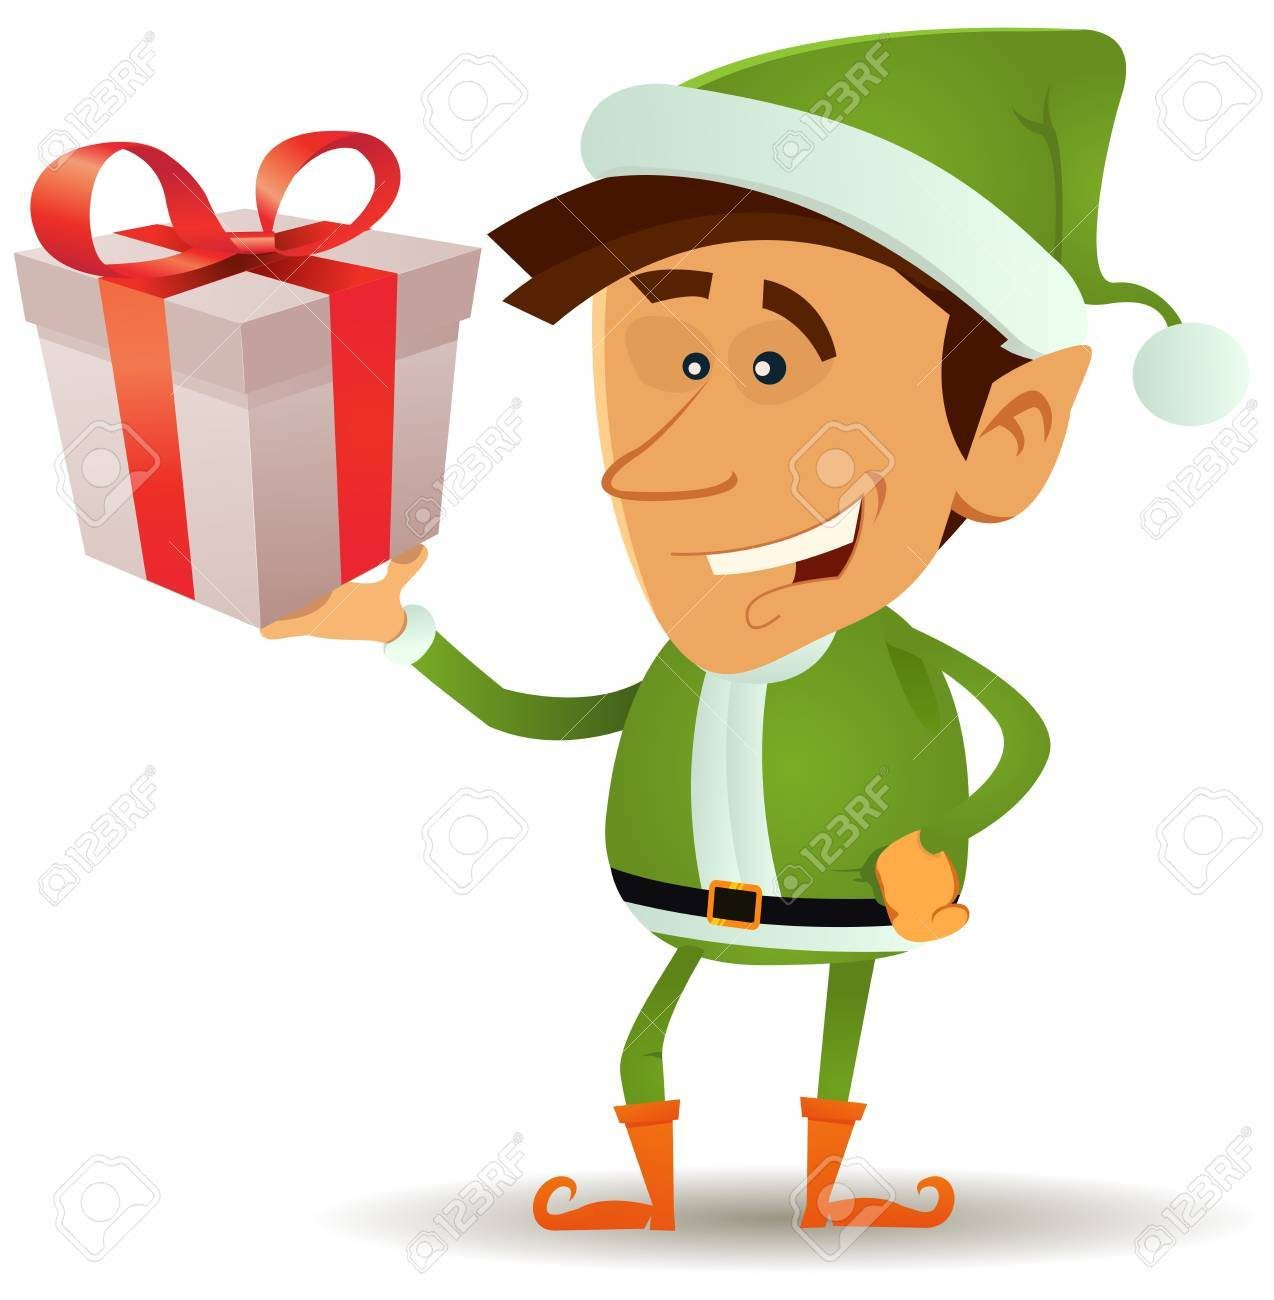 Illustration of a funny happy cartoon christmas elf or leprechaun character smiling and holding santa claus present in his hand Stock Vector - 16814955